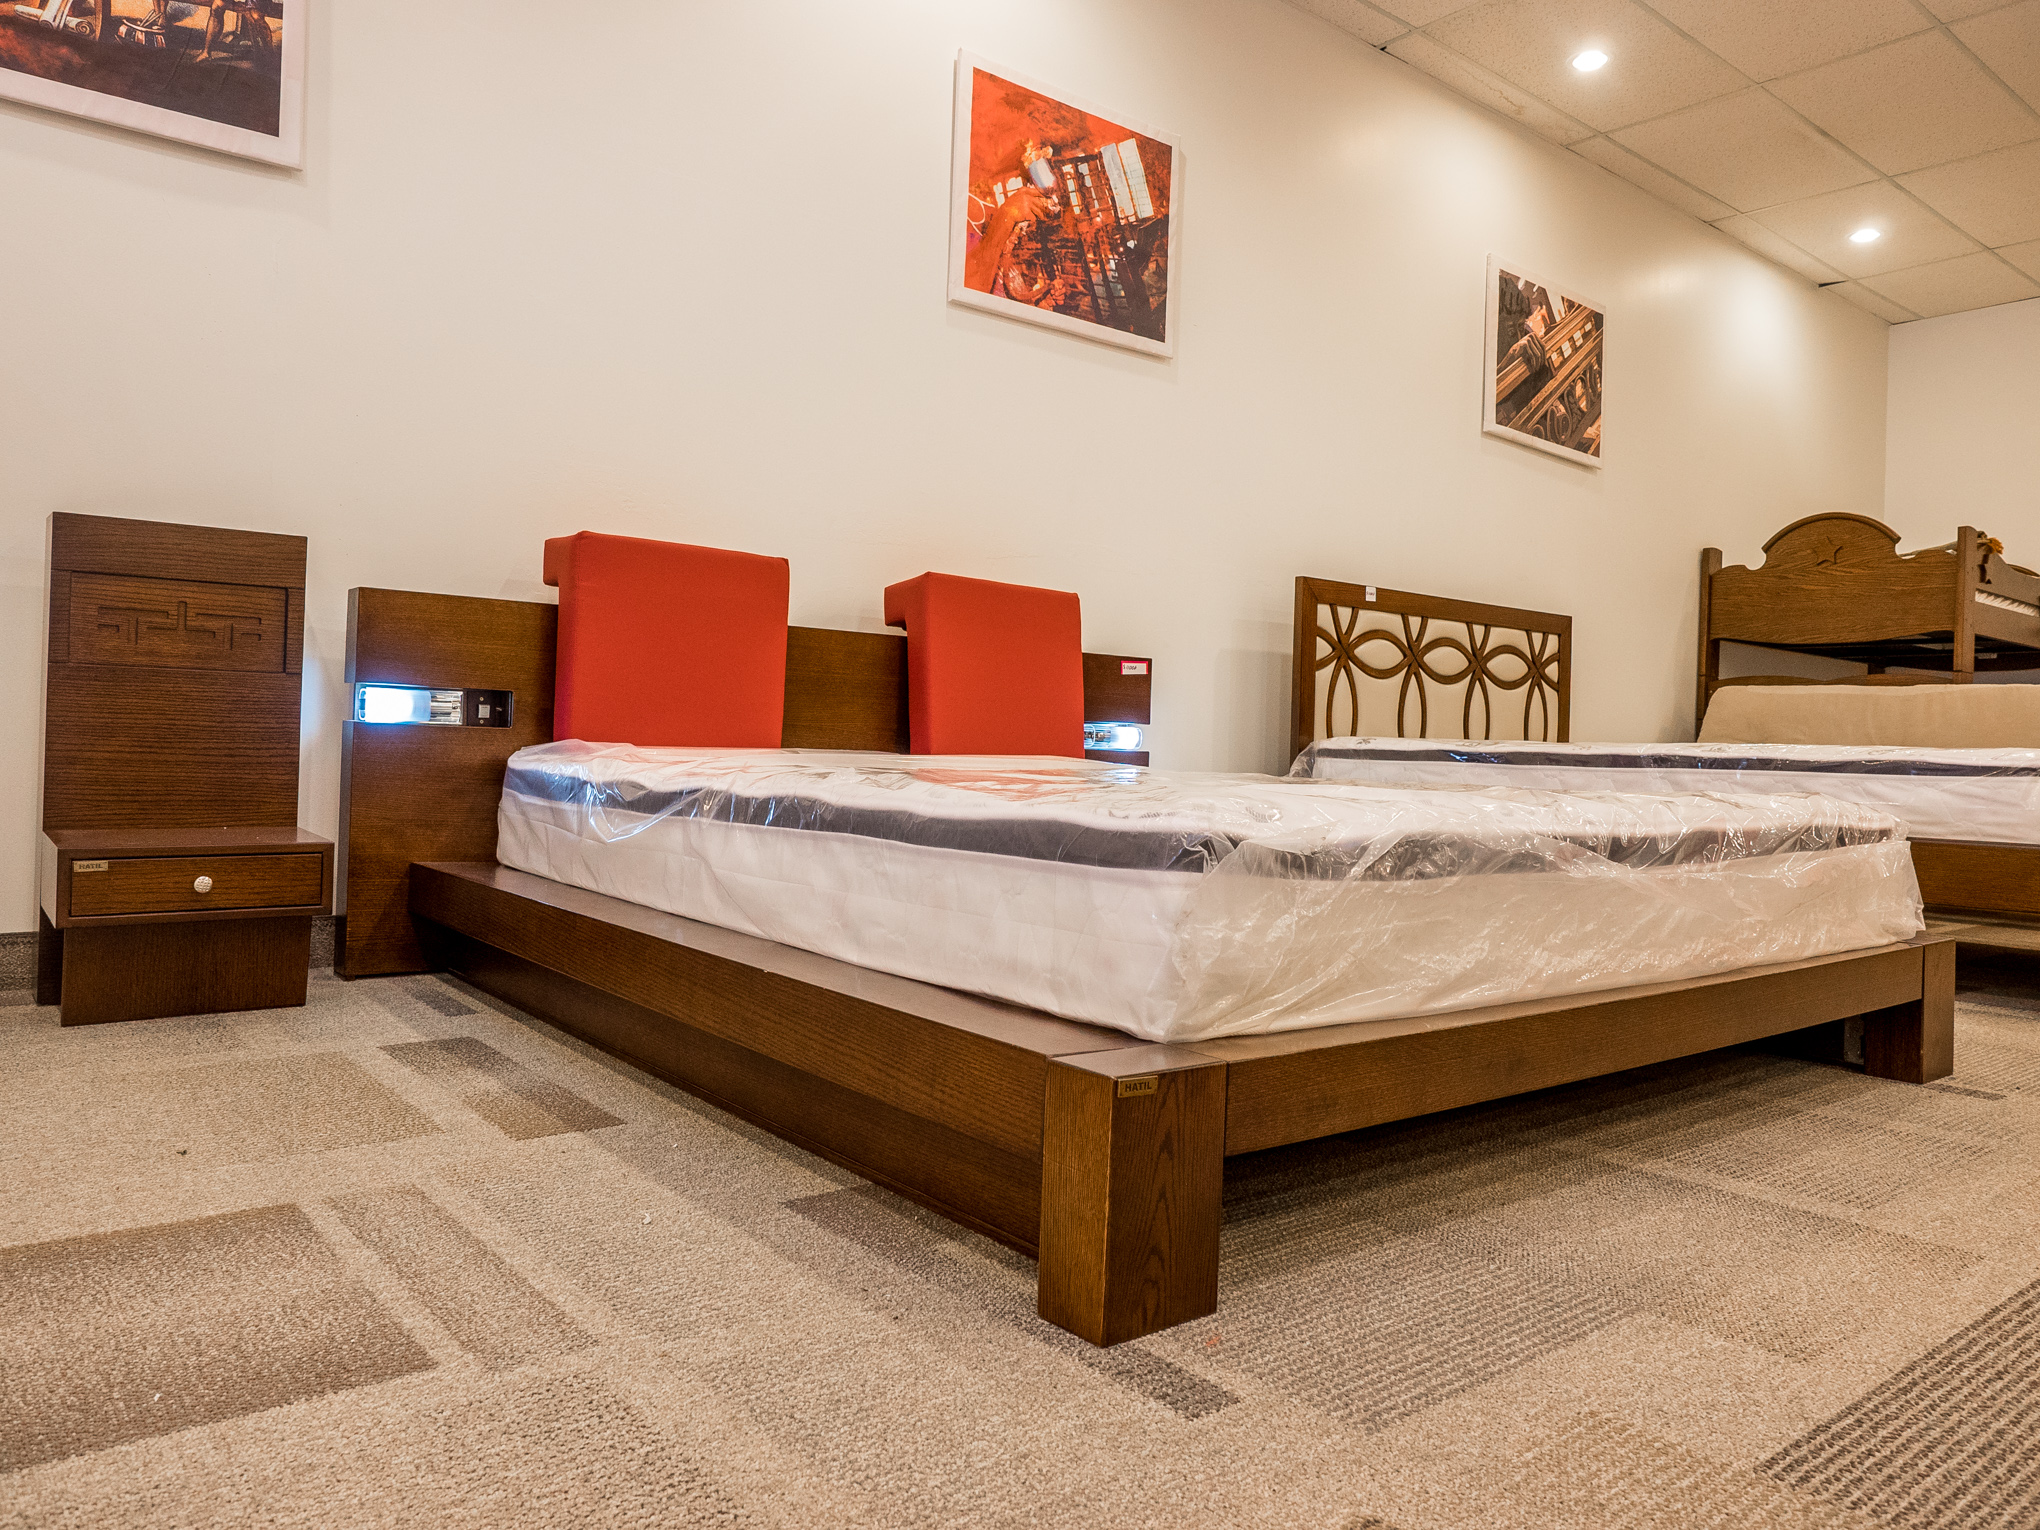 Model: 129-2-2-77. Bed with integrated lighting